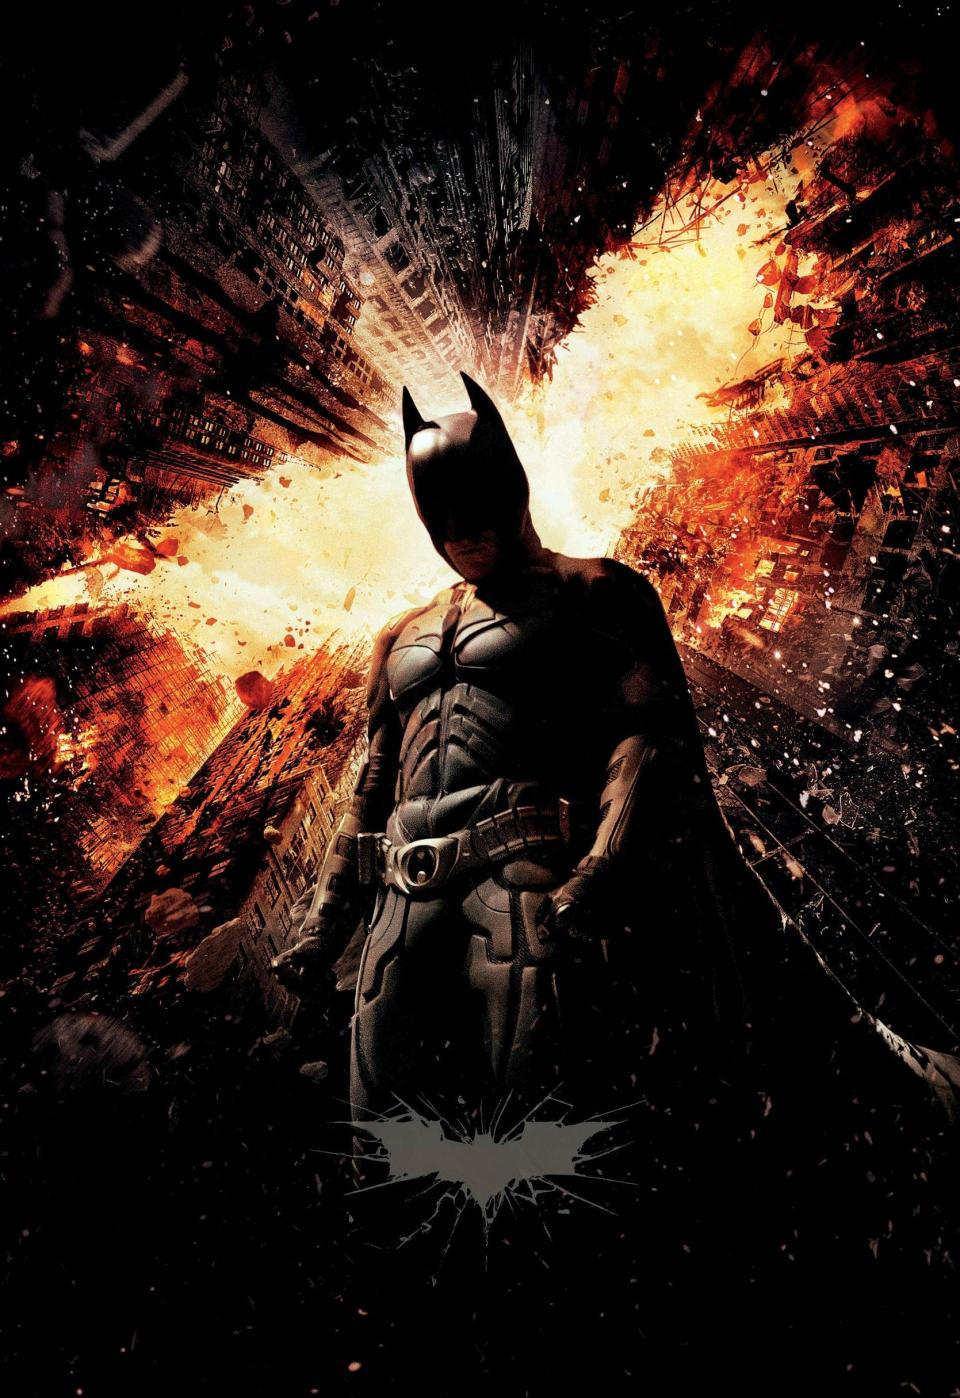 THE DARK KNIGHT RISES Textless Posters and Banners (7)